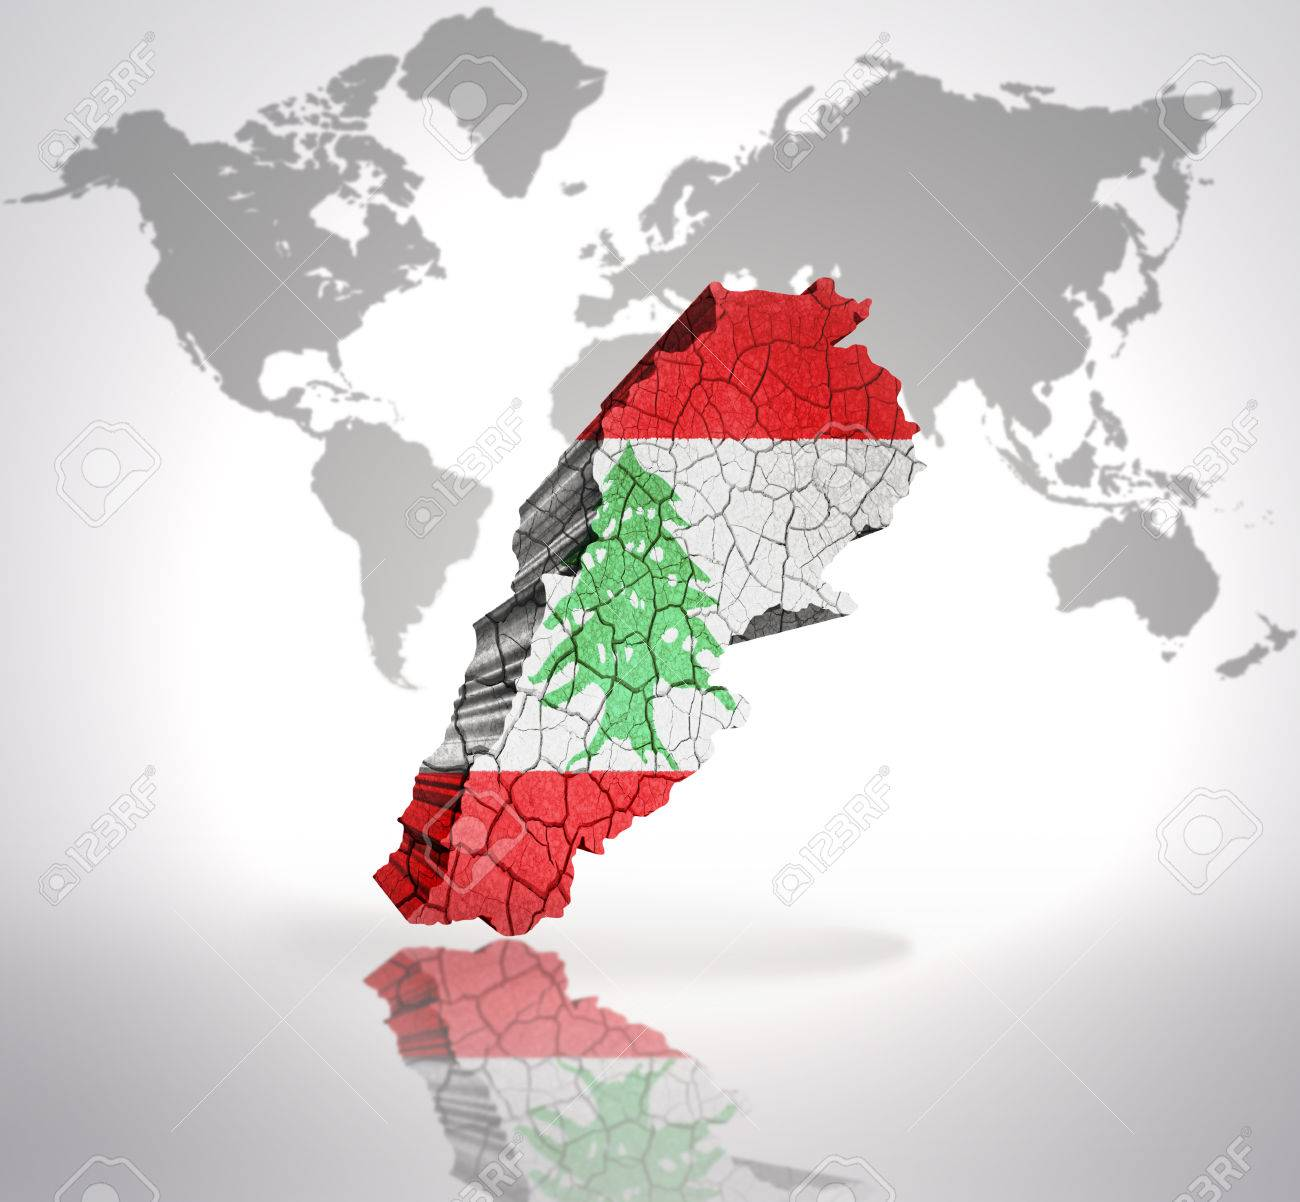 Map of lebanon with lebanese flag on a world map background stock map of lebanon with lebanese flag on a world map background stock photo 32849759 sciox Gallery